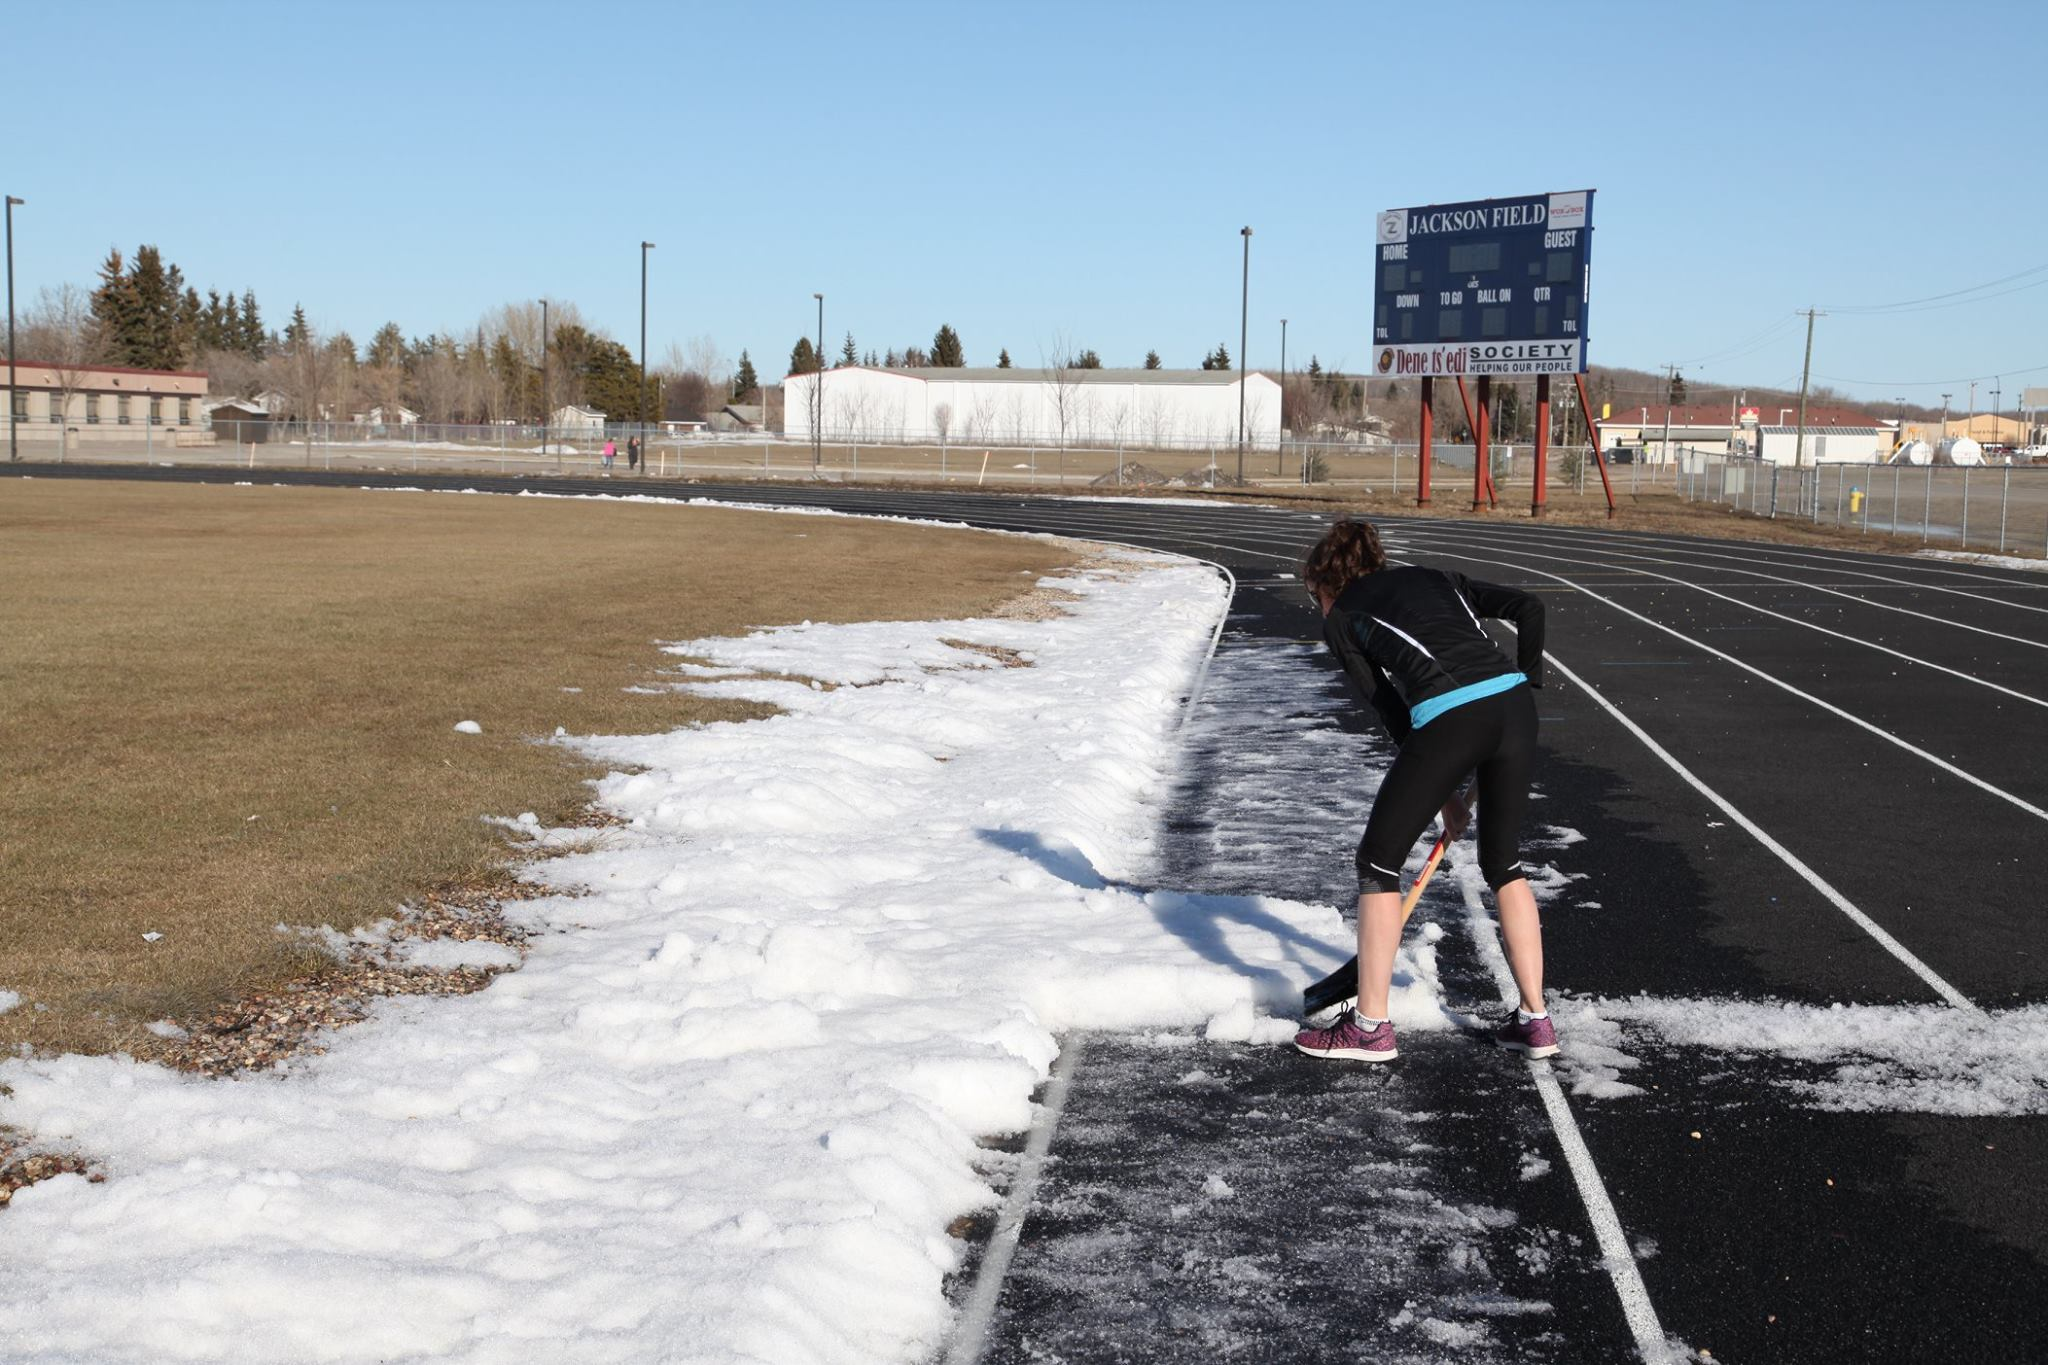 Shovelling snow off the track in the spring is also a way to warm-up.